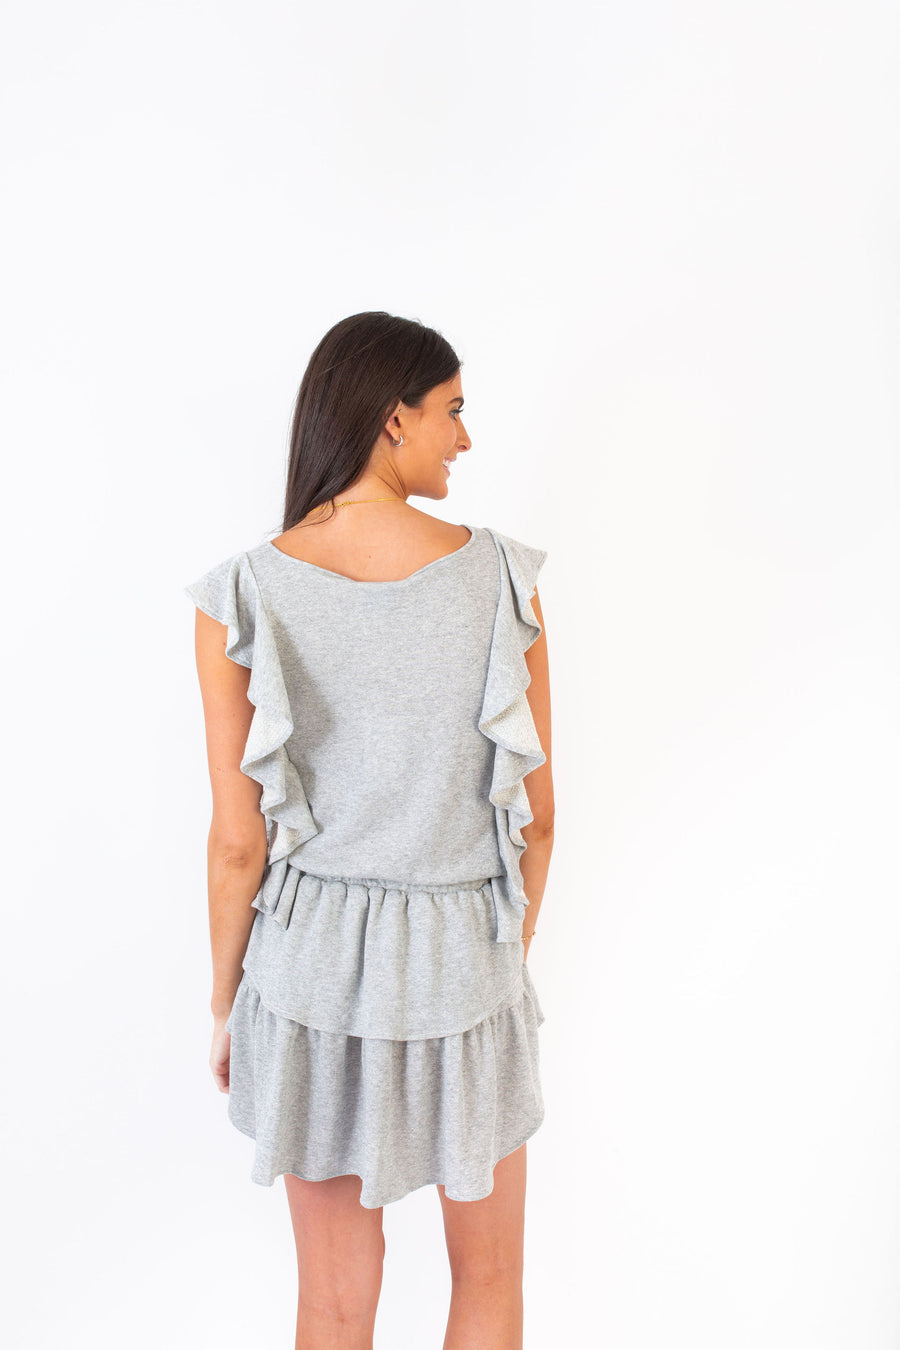 MADISON DRESS SHIMMER GREY KNIT *LIMITED*EDITION*